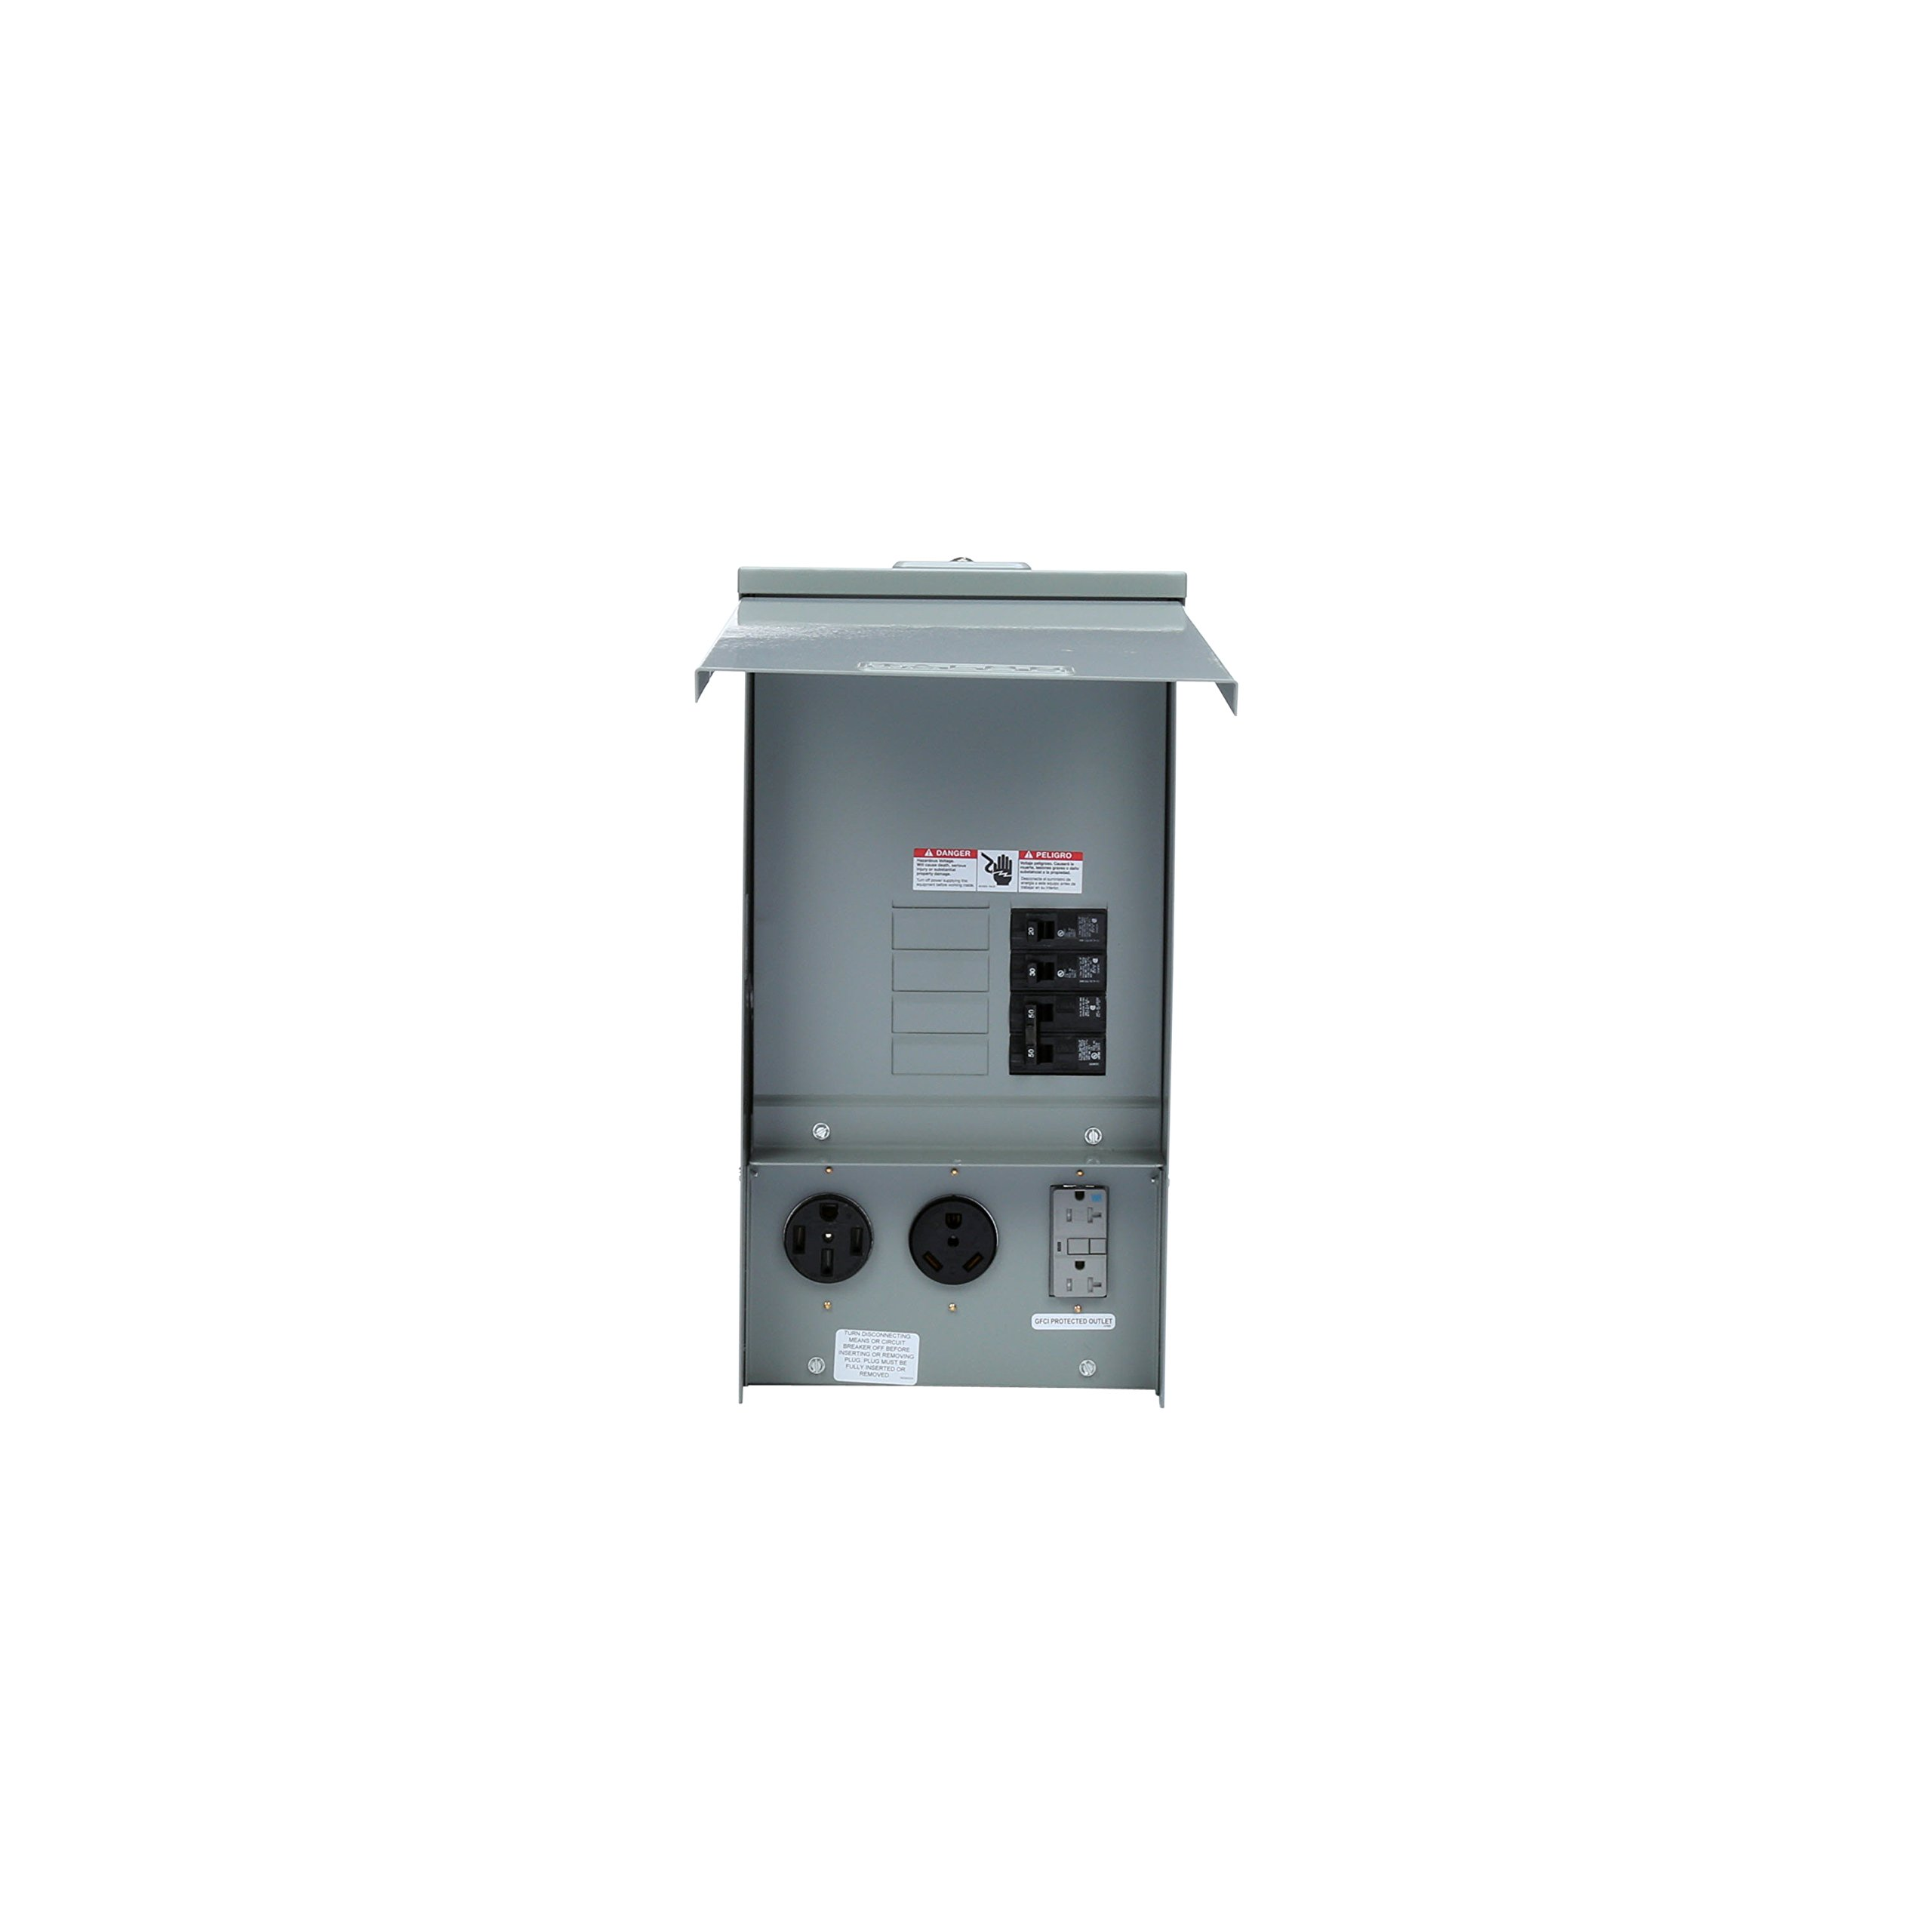 Siemens TL137US Talon Temporary Power Outlet Panel with a 20, 30, and 50-Amp Receptacle Installed, Unmetered by Siemens